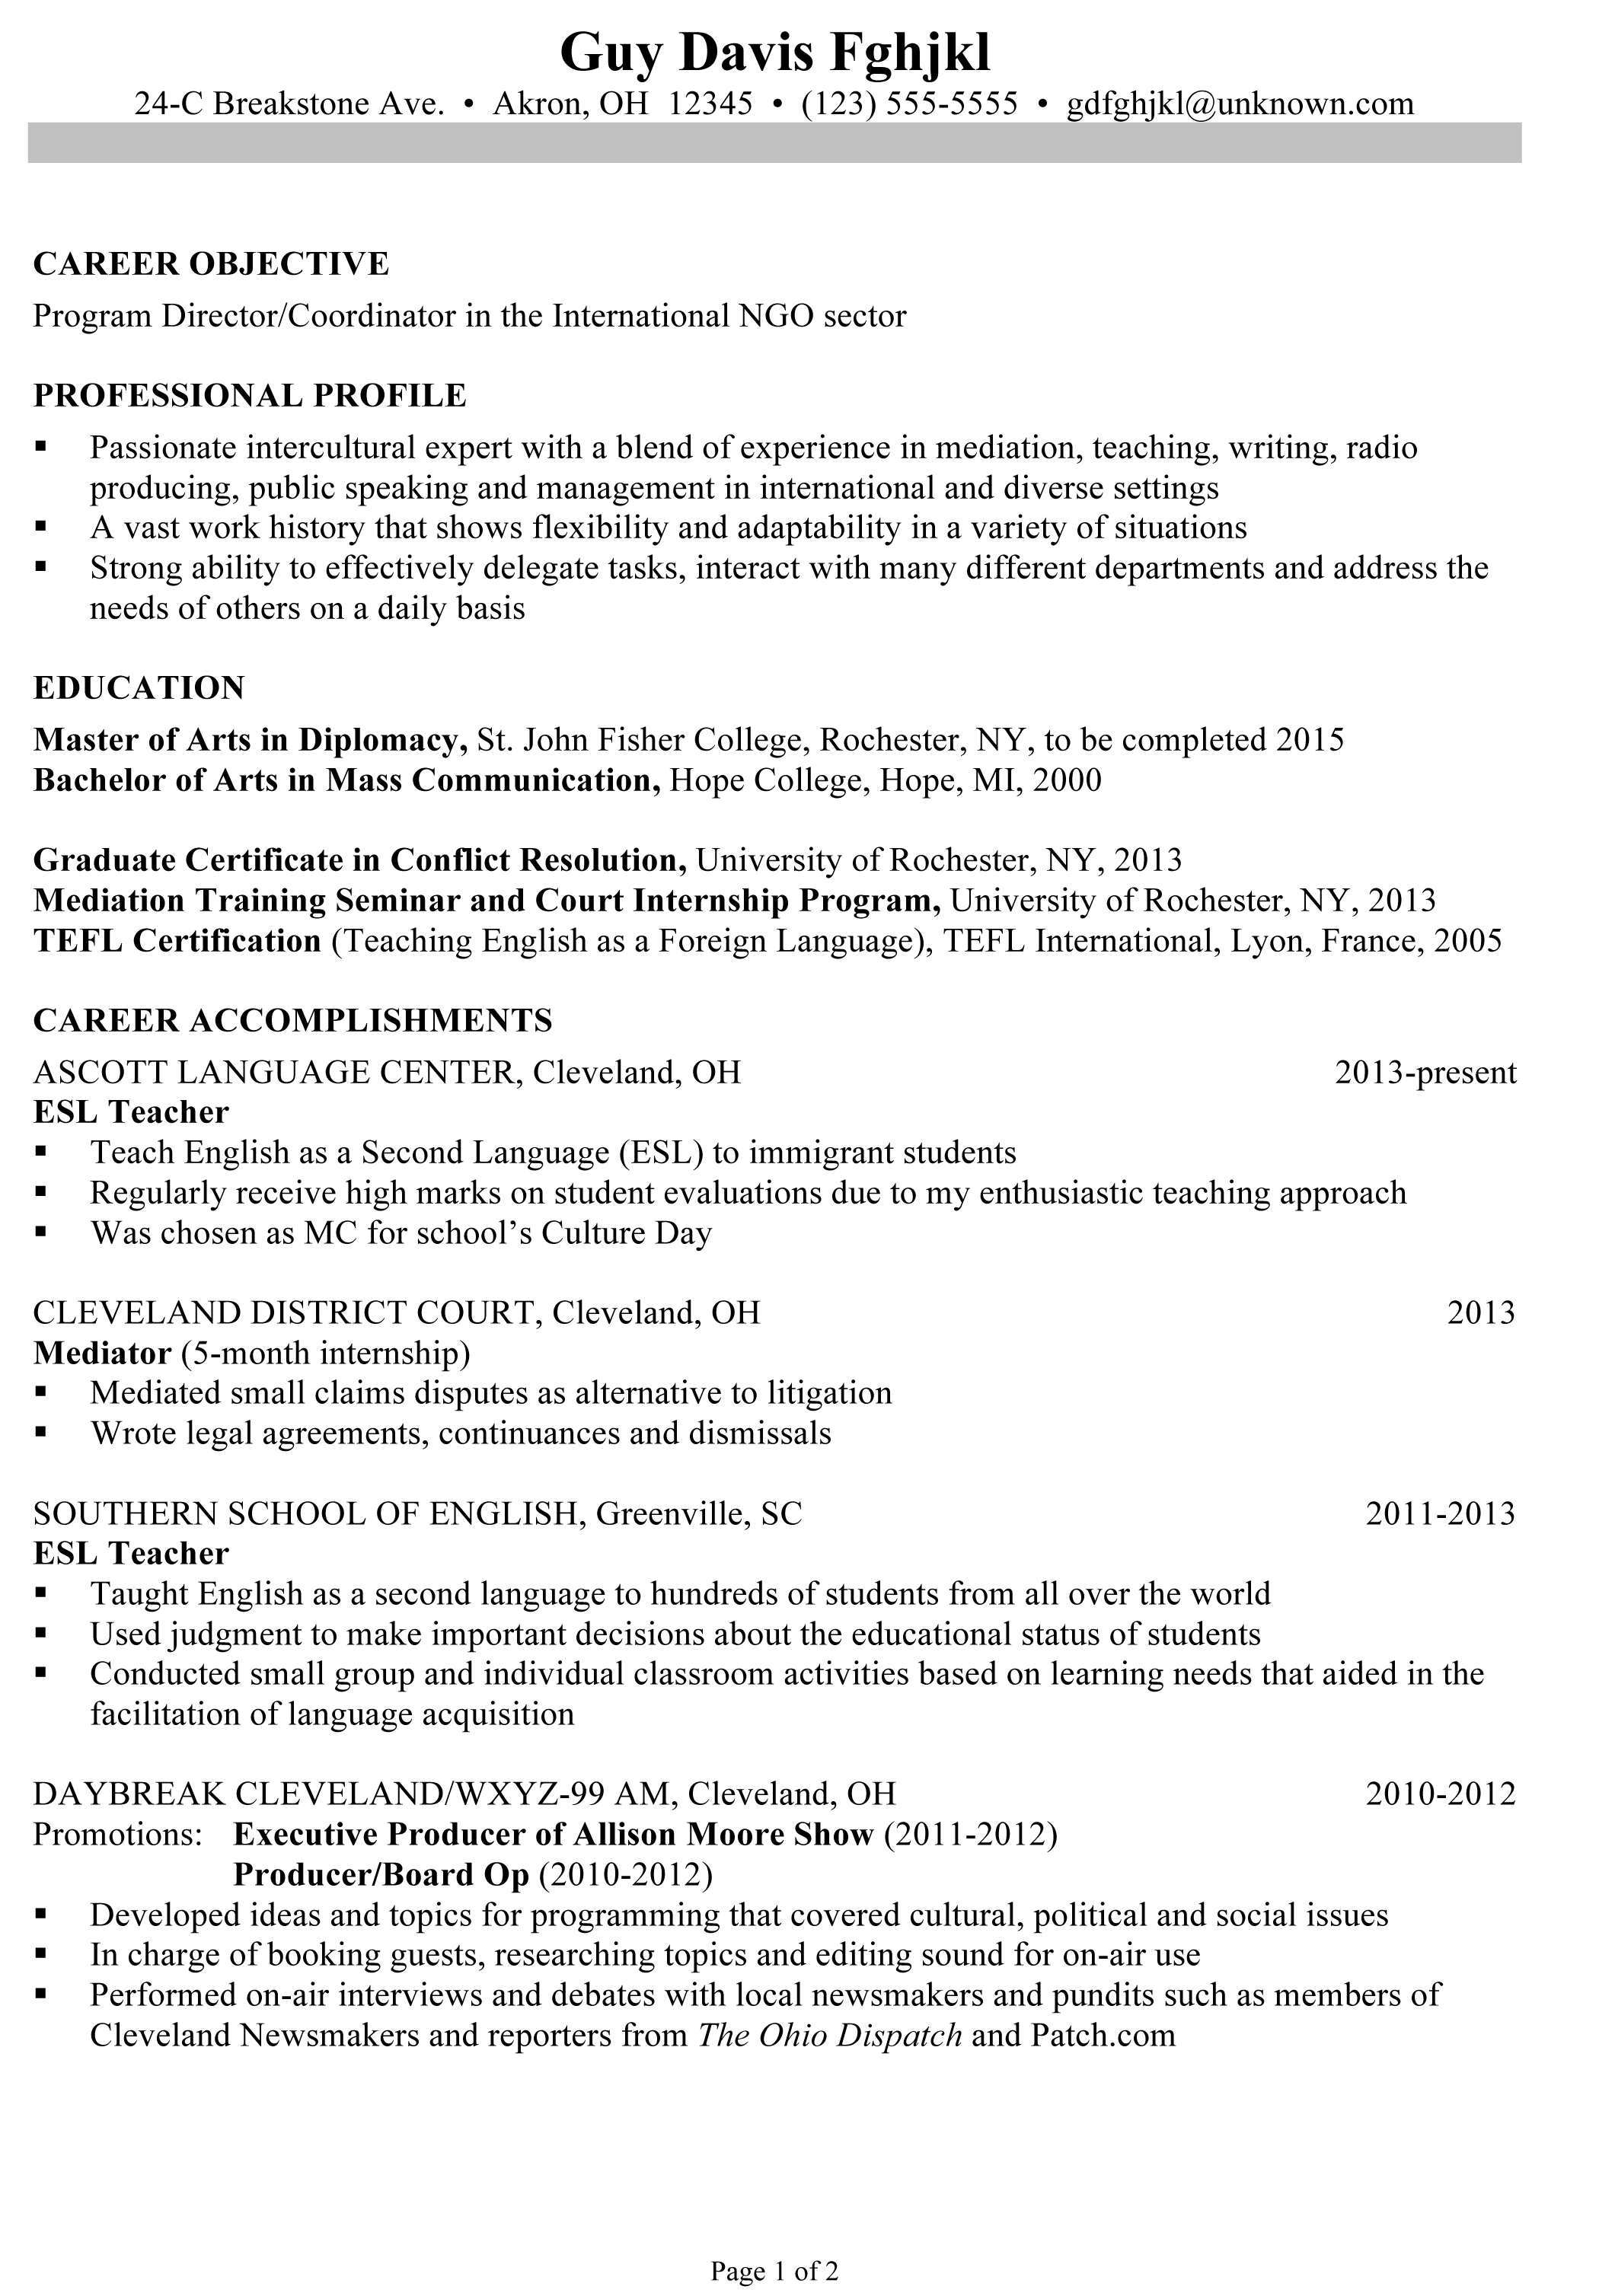 Professional summary resume example best templatesample resumes professional summary resume example best templatesample resumes cover letter examples altavistaventures